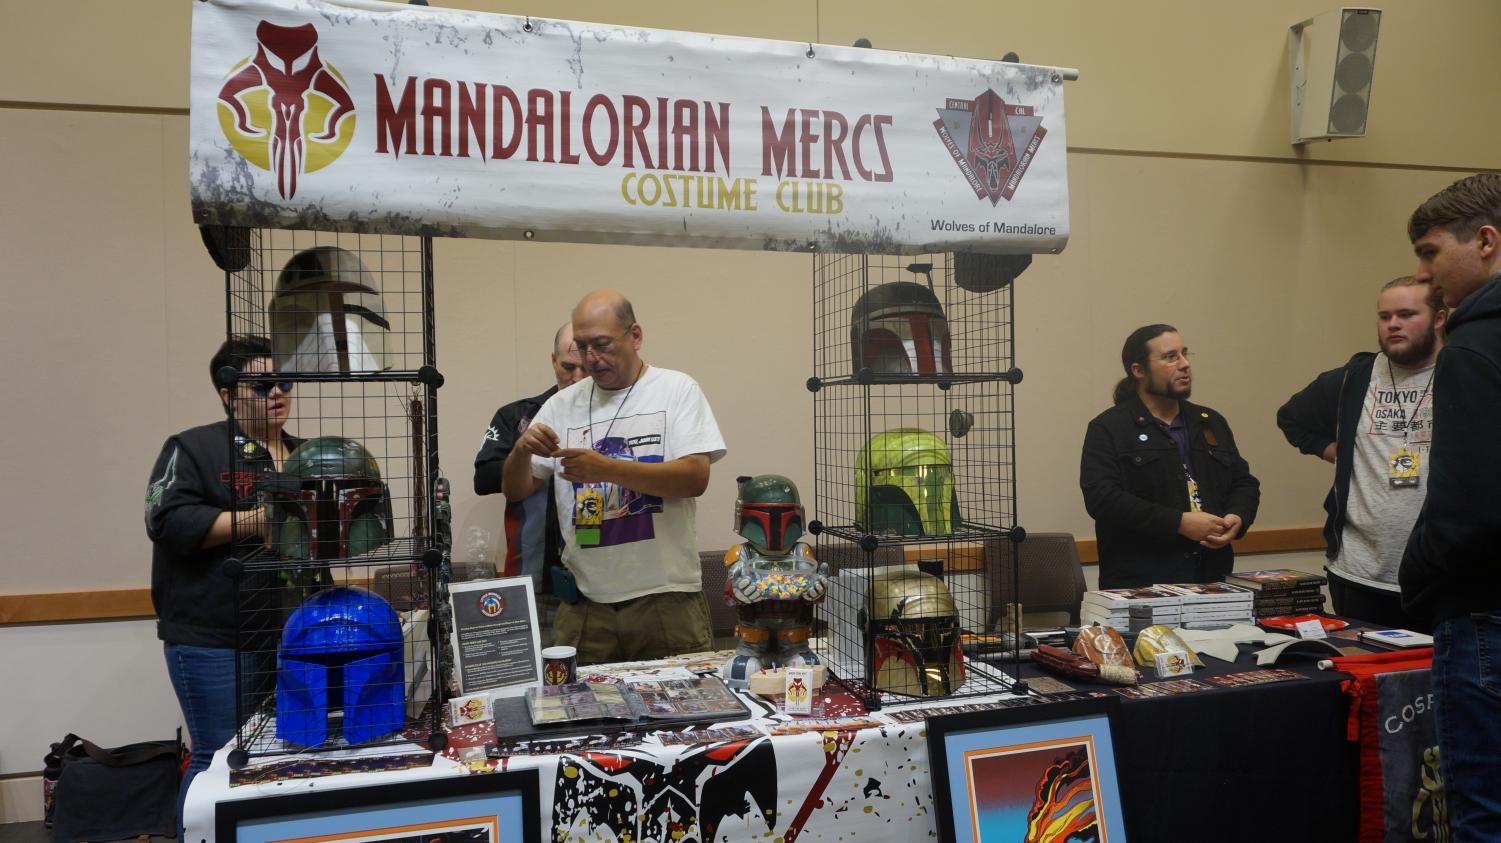 Booths were run and offered merch for con-goers.